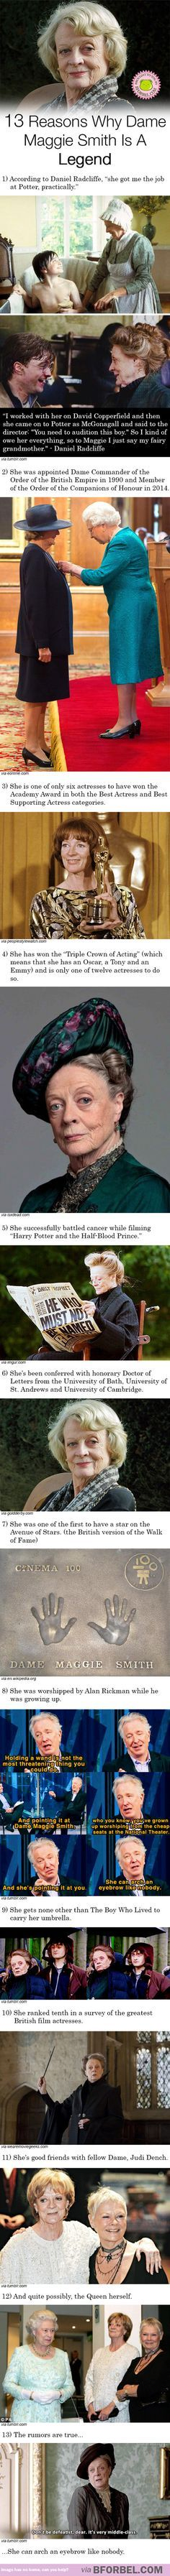 13 Reasons Why Dame Maggie Smith Is A Legend Alan Rickman's face in that last panel! Like his life goal is to arch an eyebrow as well as Dame Maggie Smith! Images Harry Potter, Theme Harry Potter, Harry Potter Love, Harry Potter Fandom, Harry Potter Memes, Potter Facts, Maggie Smith, Hogwarts, Scorpius And Rose